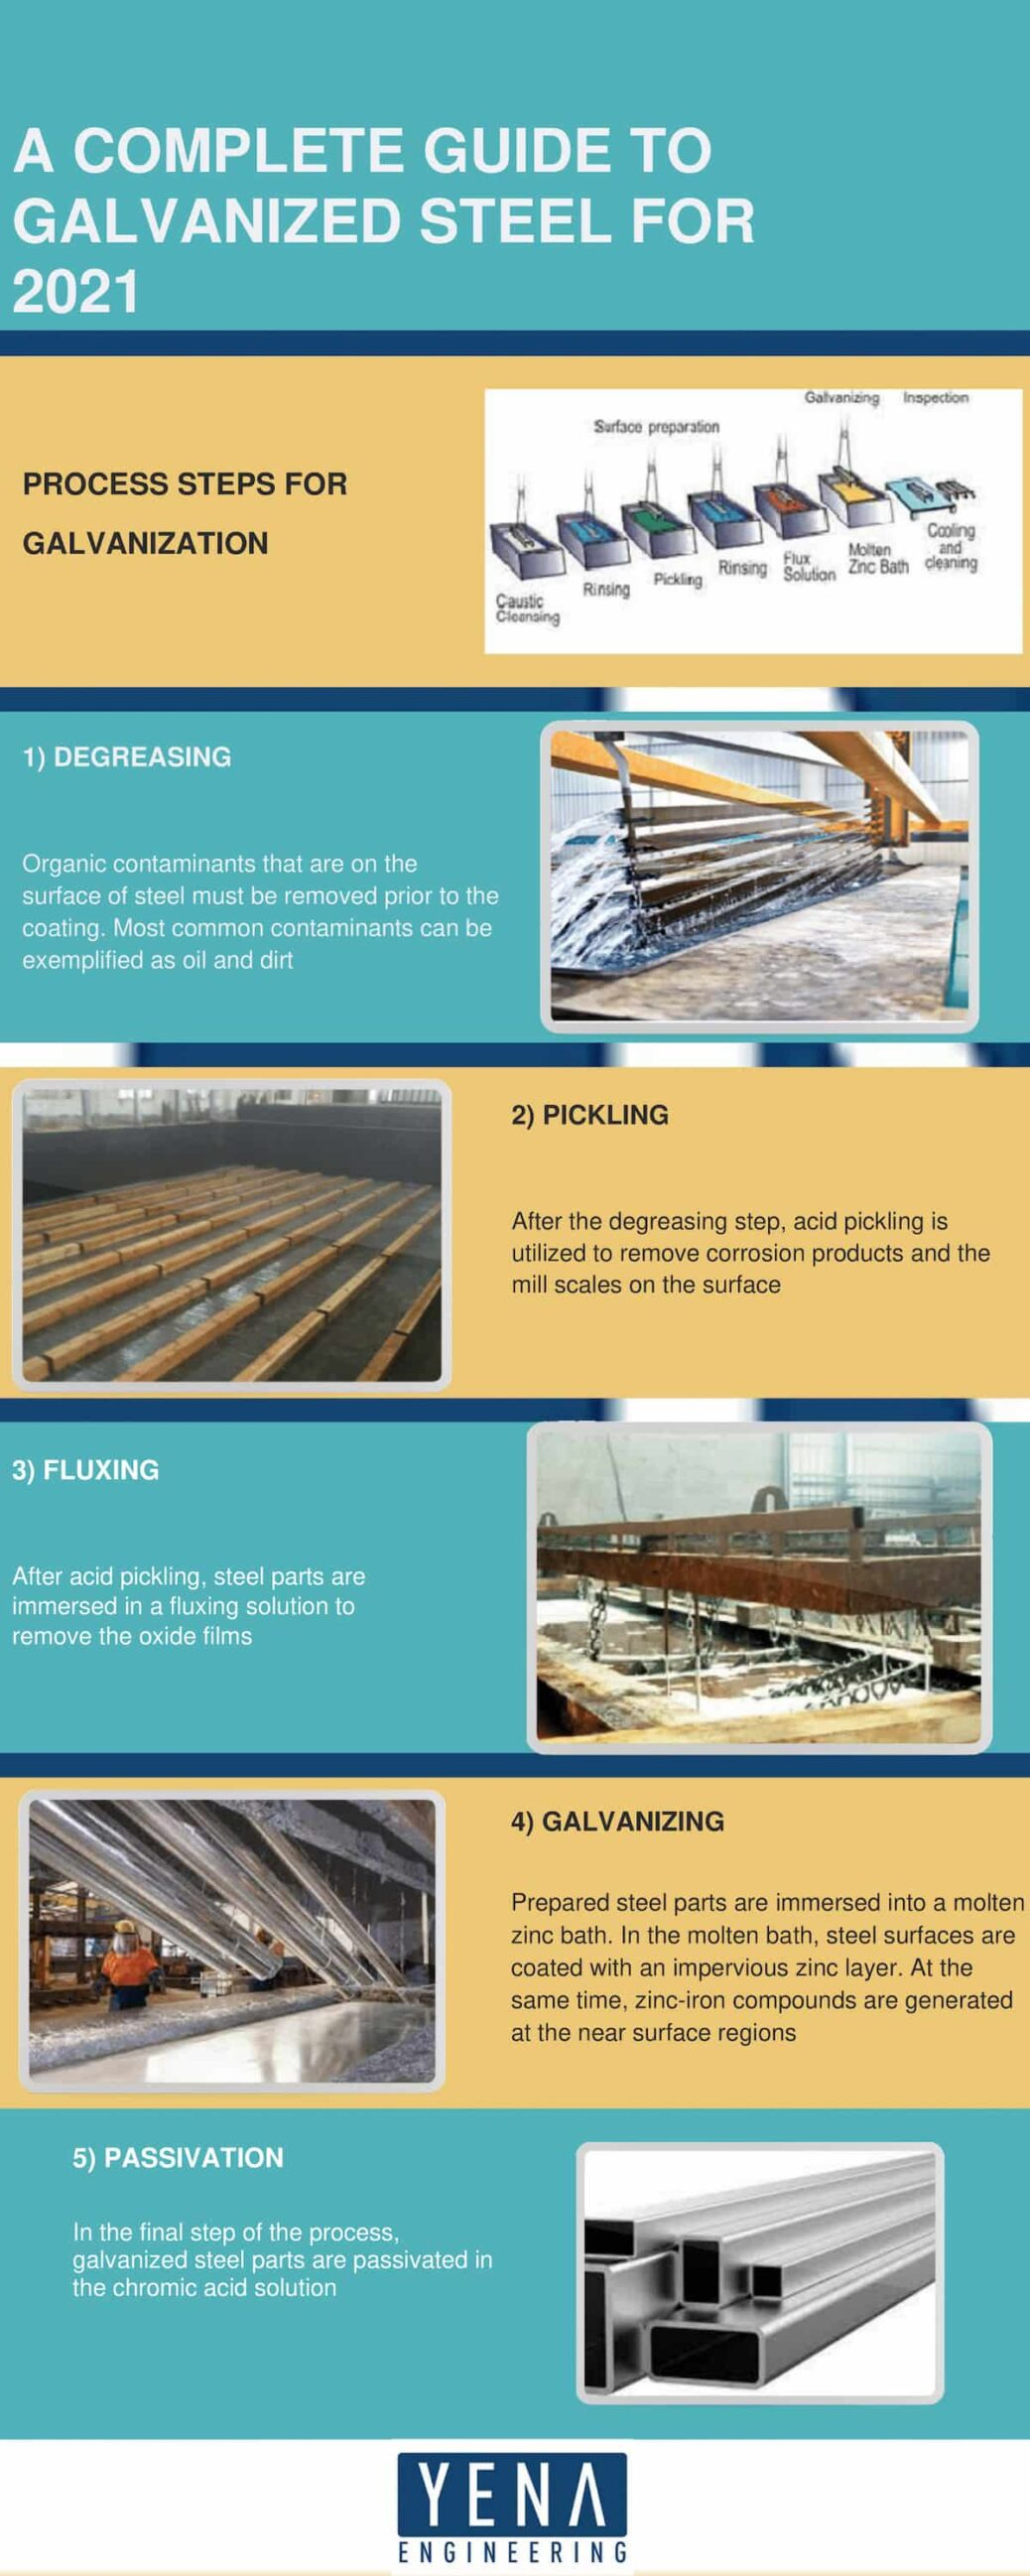 A Complete Guide To Galvanized Steel for 2021